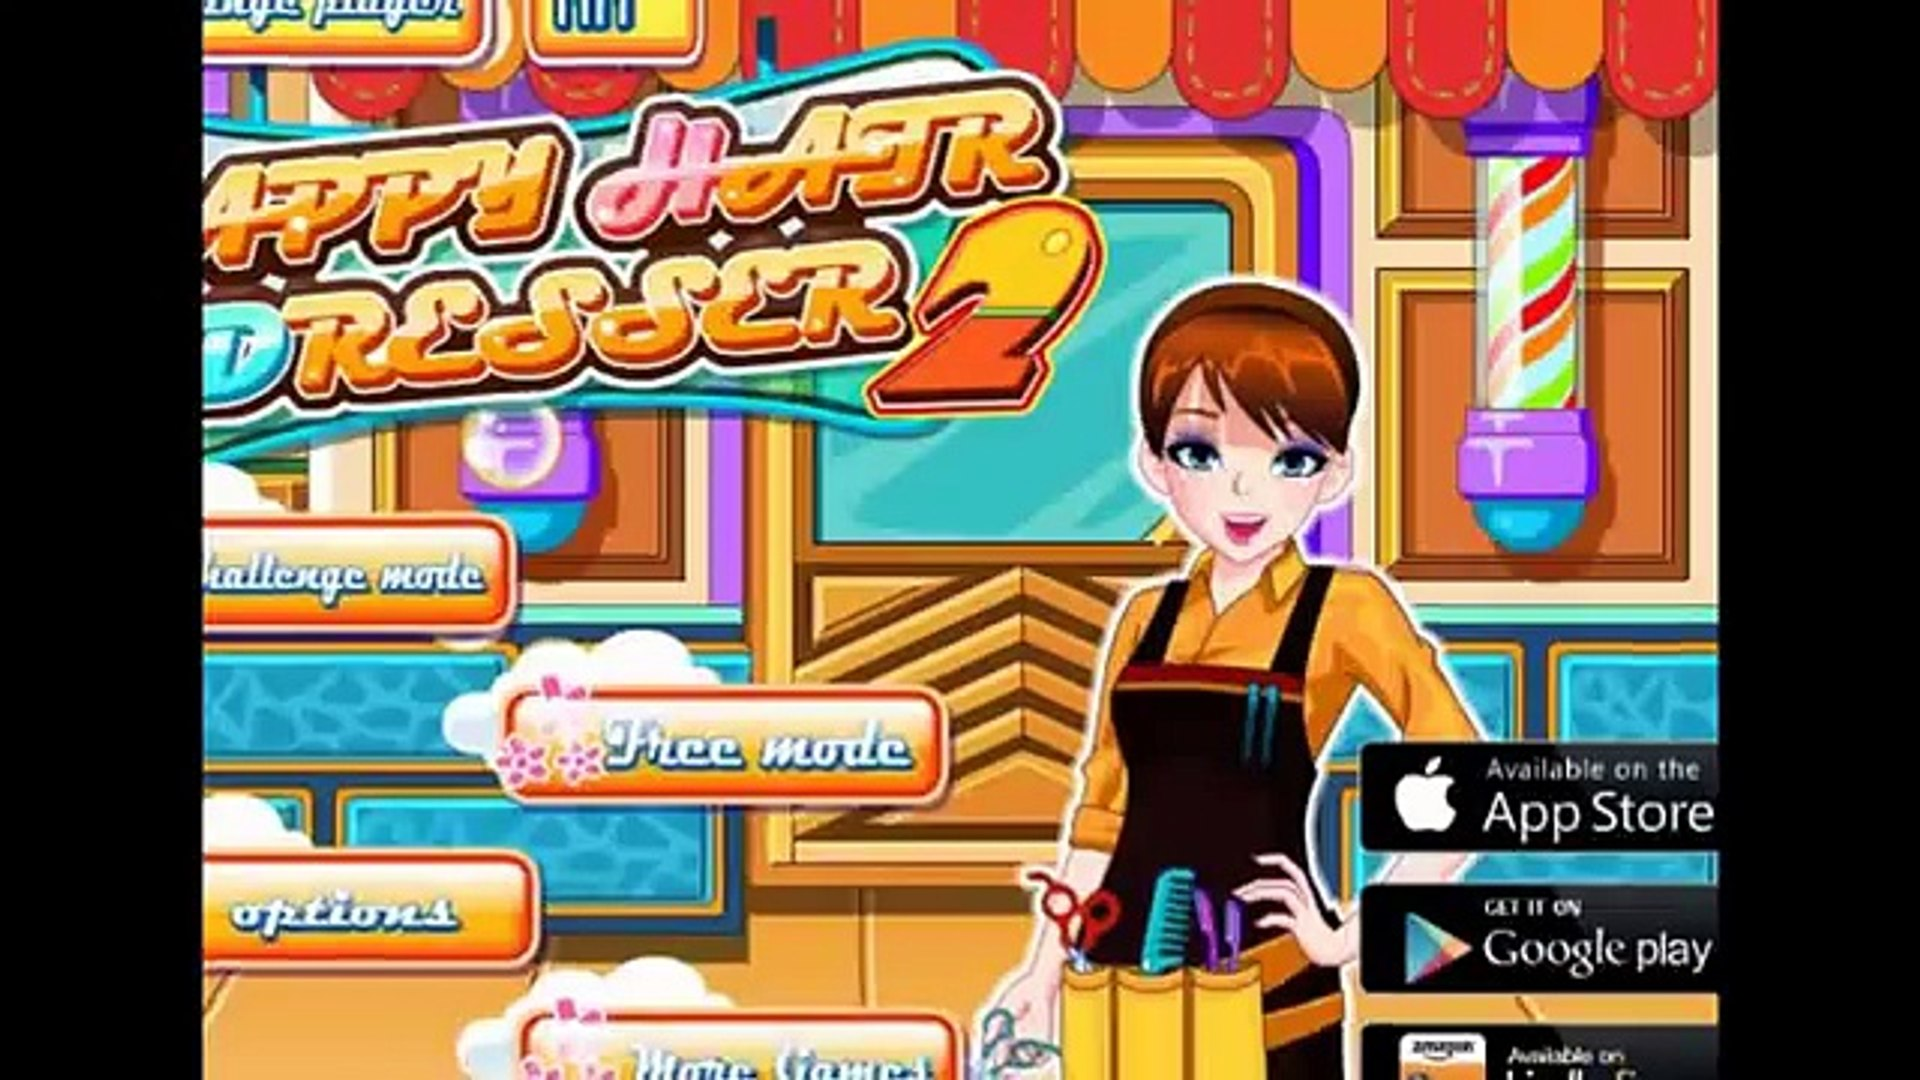 hair styling games realistic, hair styling games to play free online